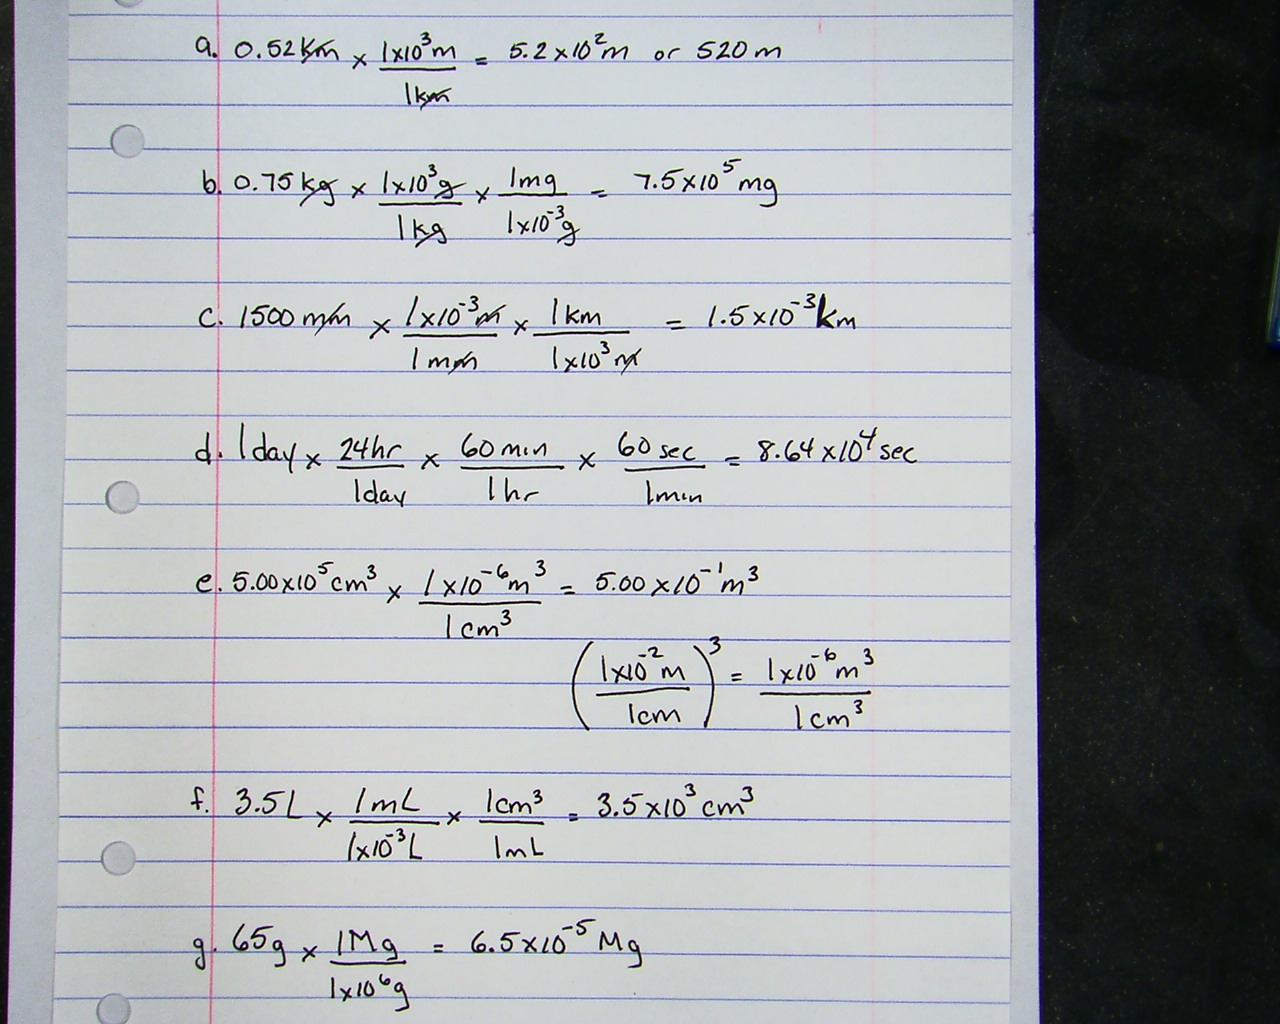 Worksheets Chemistry Conversion Worksheets With Answers baylor scott chemistry conversion worksheet answer sheet a g